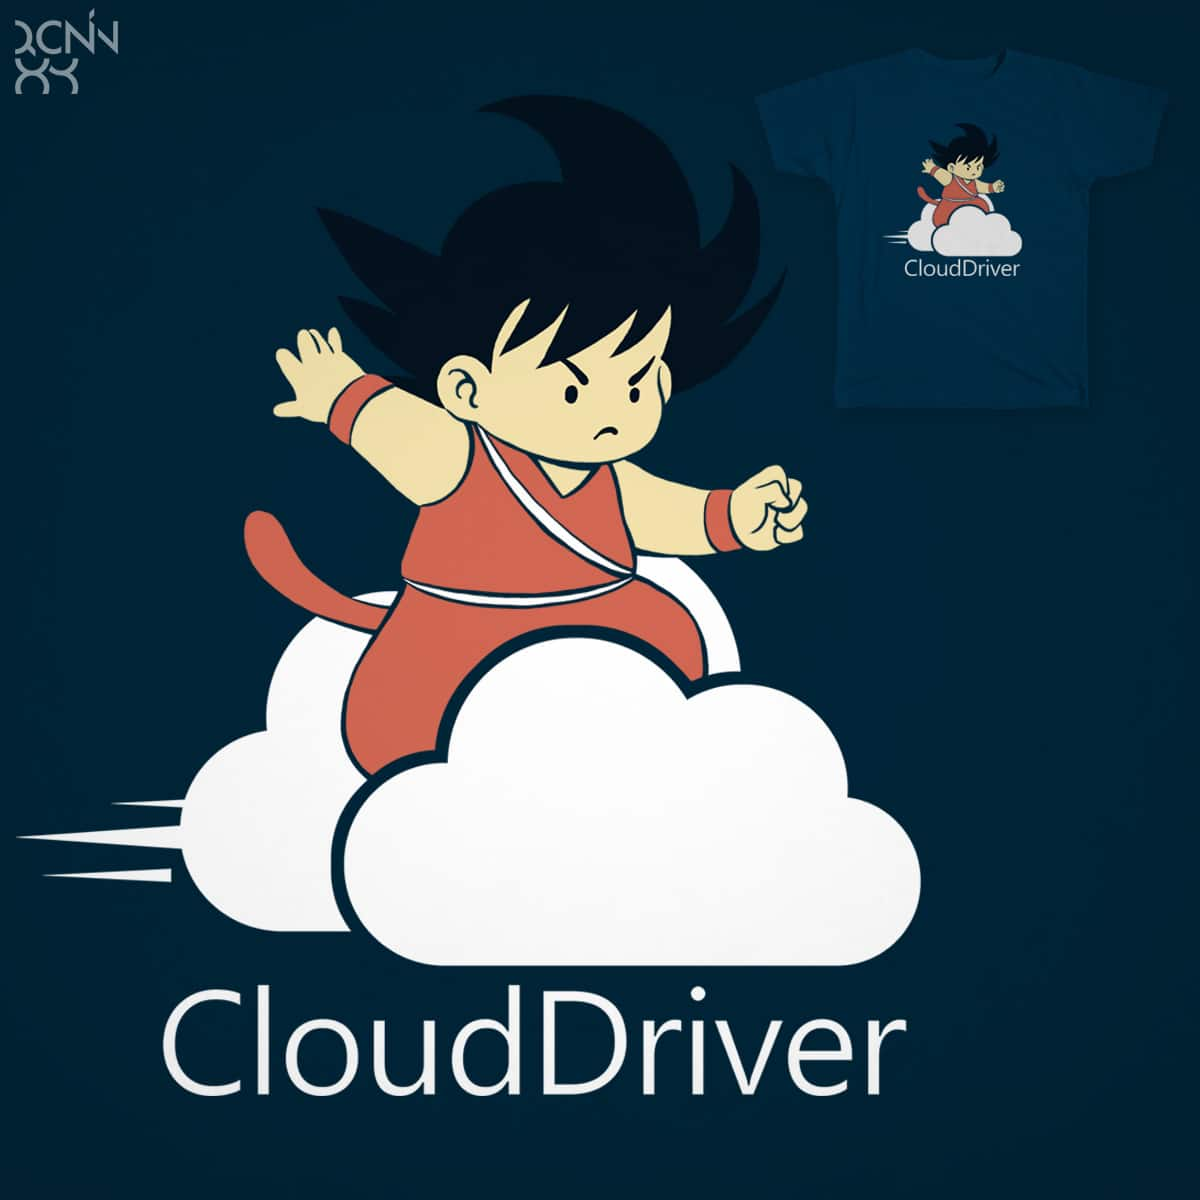 CloudDriver by ronin84 on Threadless